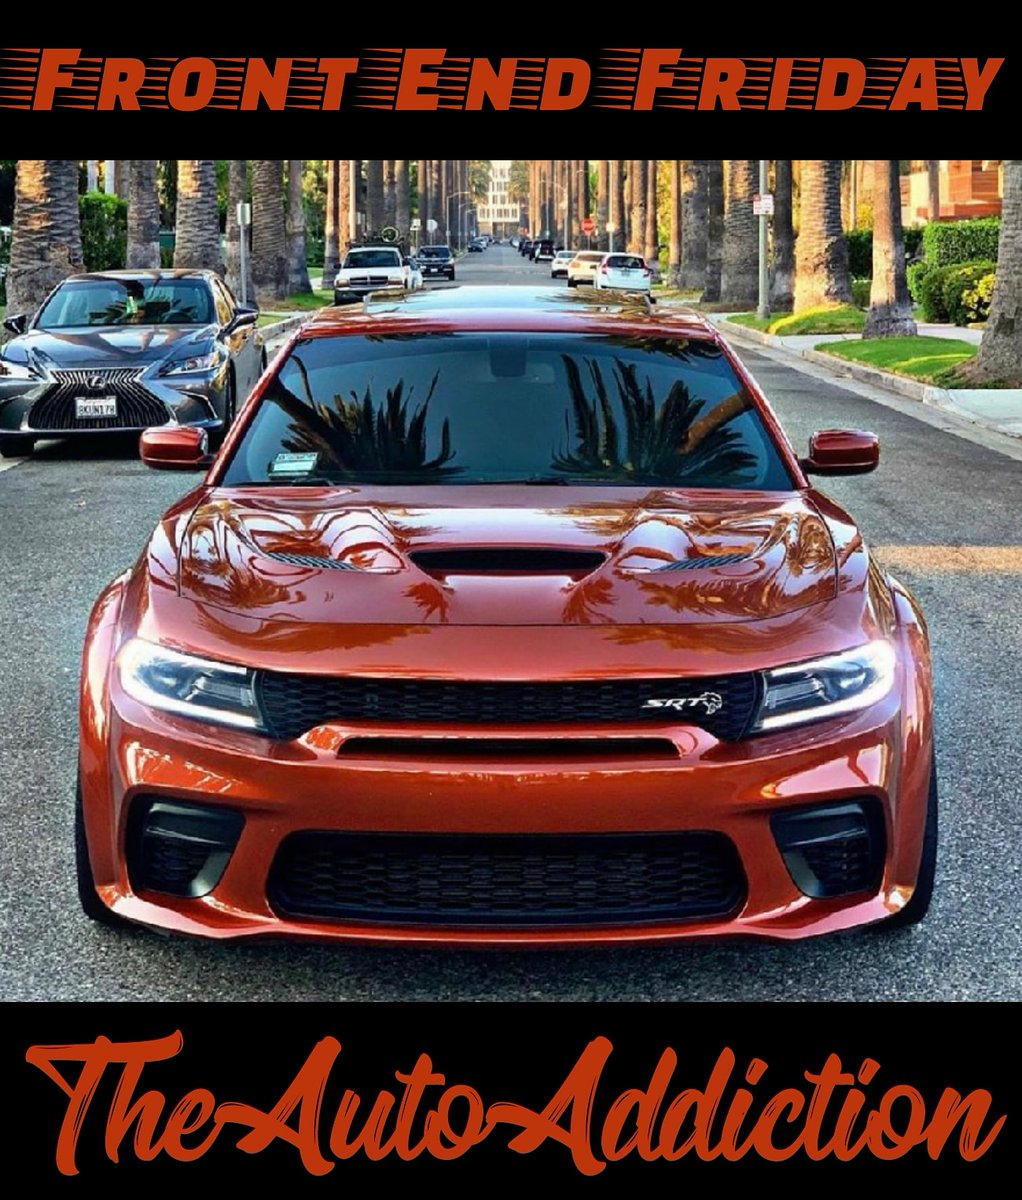 #frontendfriday #dodge #srt #charger #hellcat  . . Tag the owner:👀 . . #theautoaddiction #clothingbrand #stickers #hats #merch #carswithoutlimits #carlife #photooftheday #carsofinsta #supercars #carlover #automotive #follow #dreamcar #photography #carenthusiast #picoftheday https://t.co/pCdmhobjBj